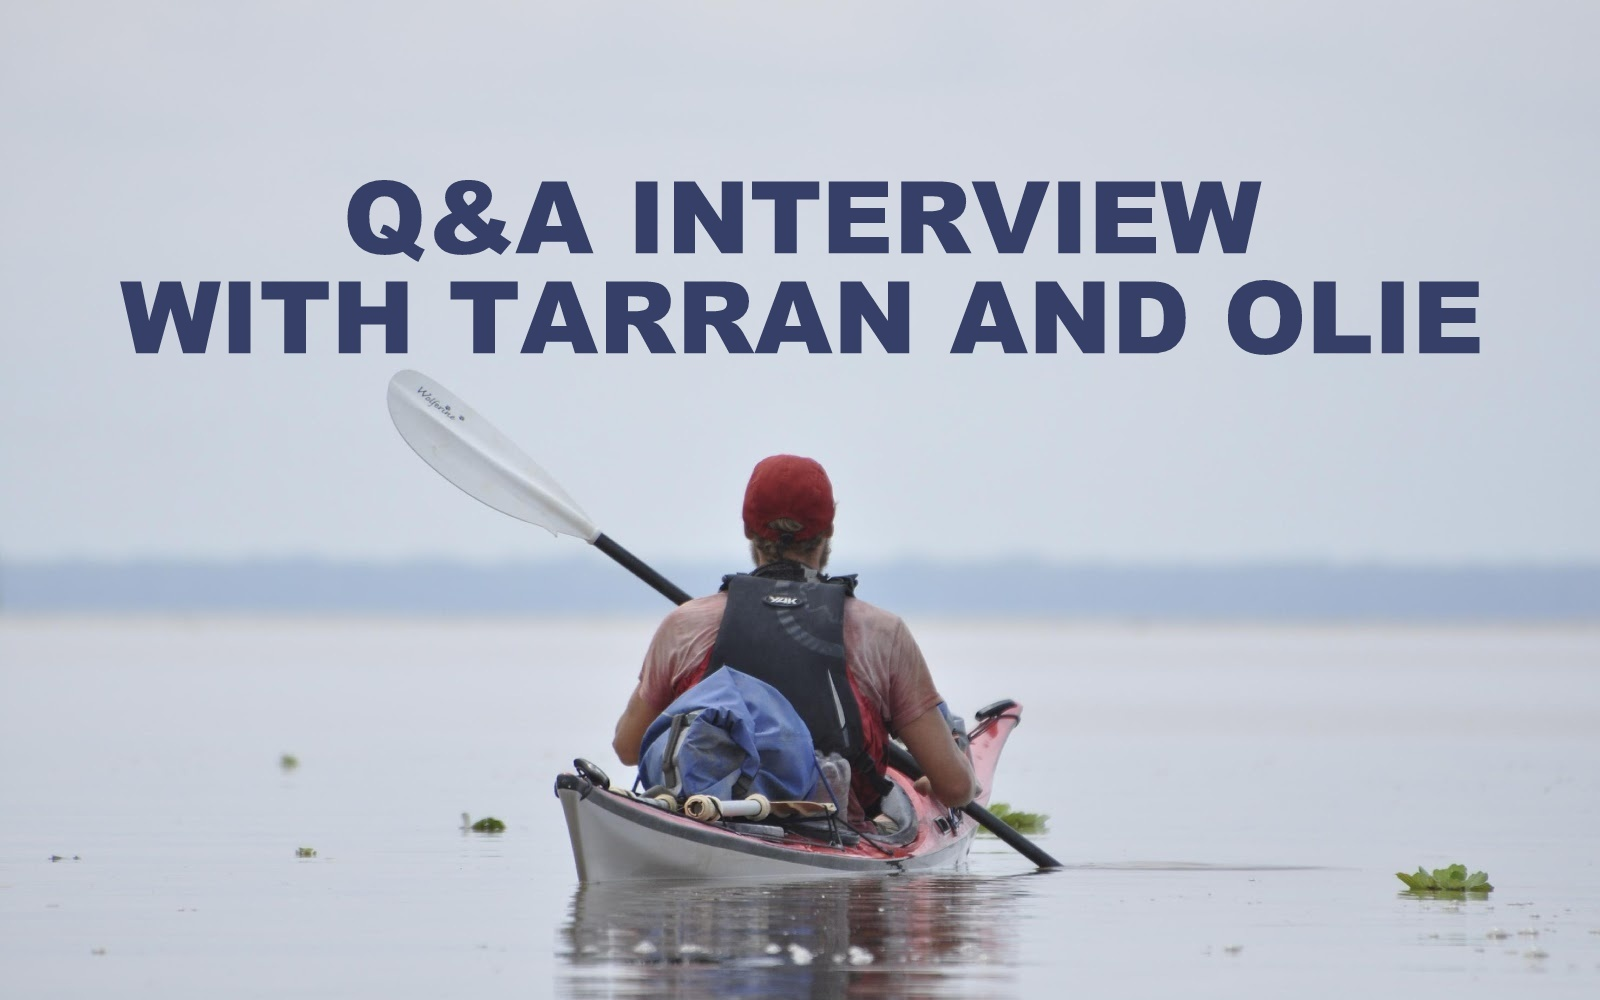 Q&A WITH TARRAN AND OLIE